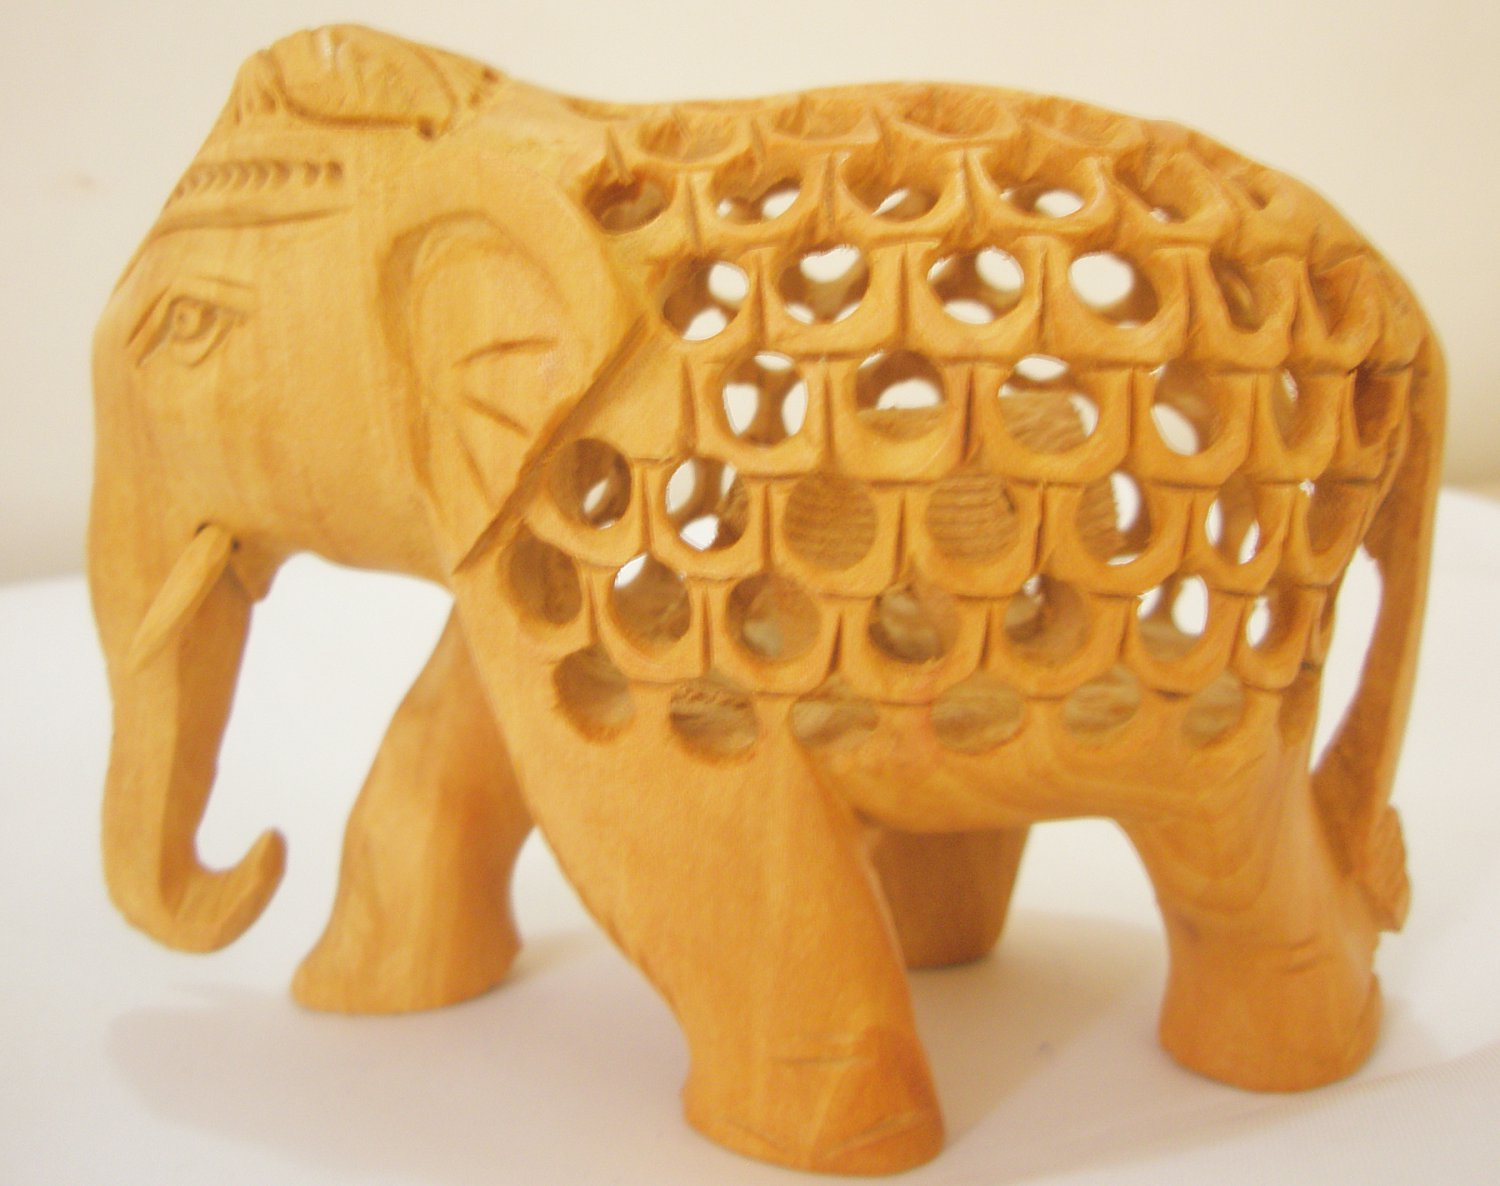 Hand Carved Intricate Wooden Elephant Figurine Baby Elephant Lucky Figure Statue